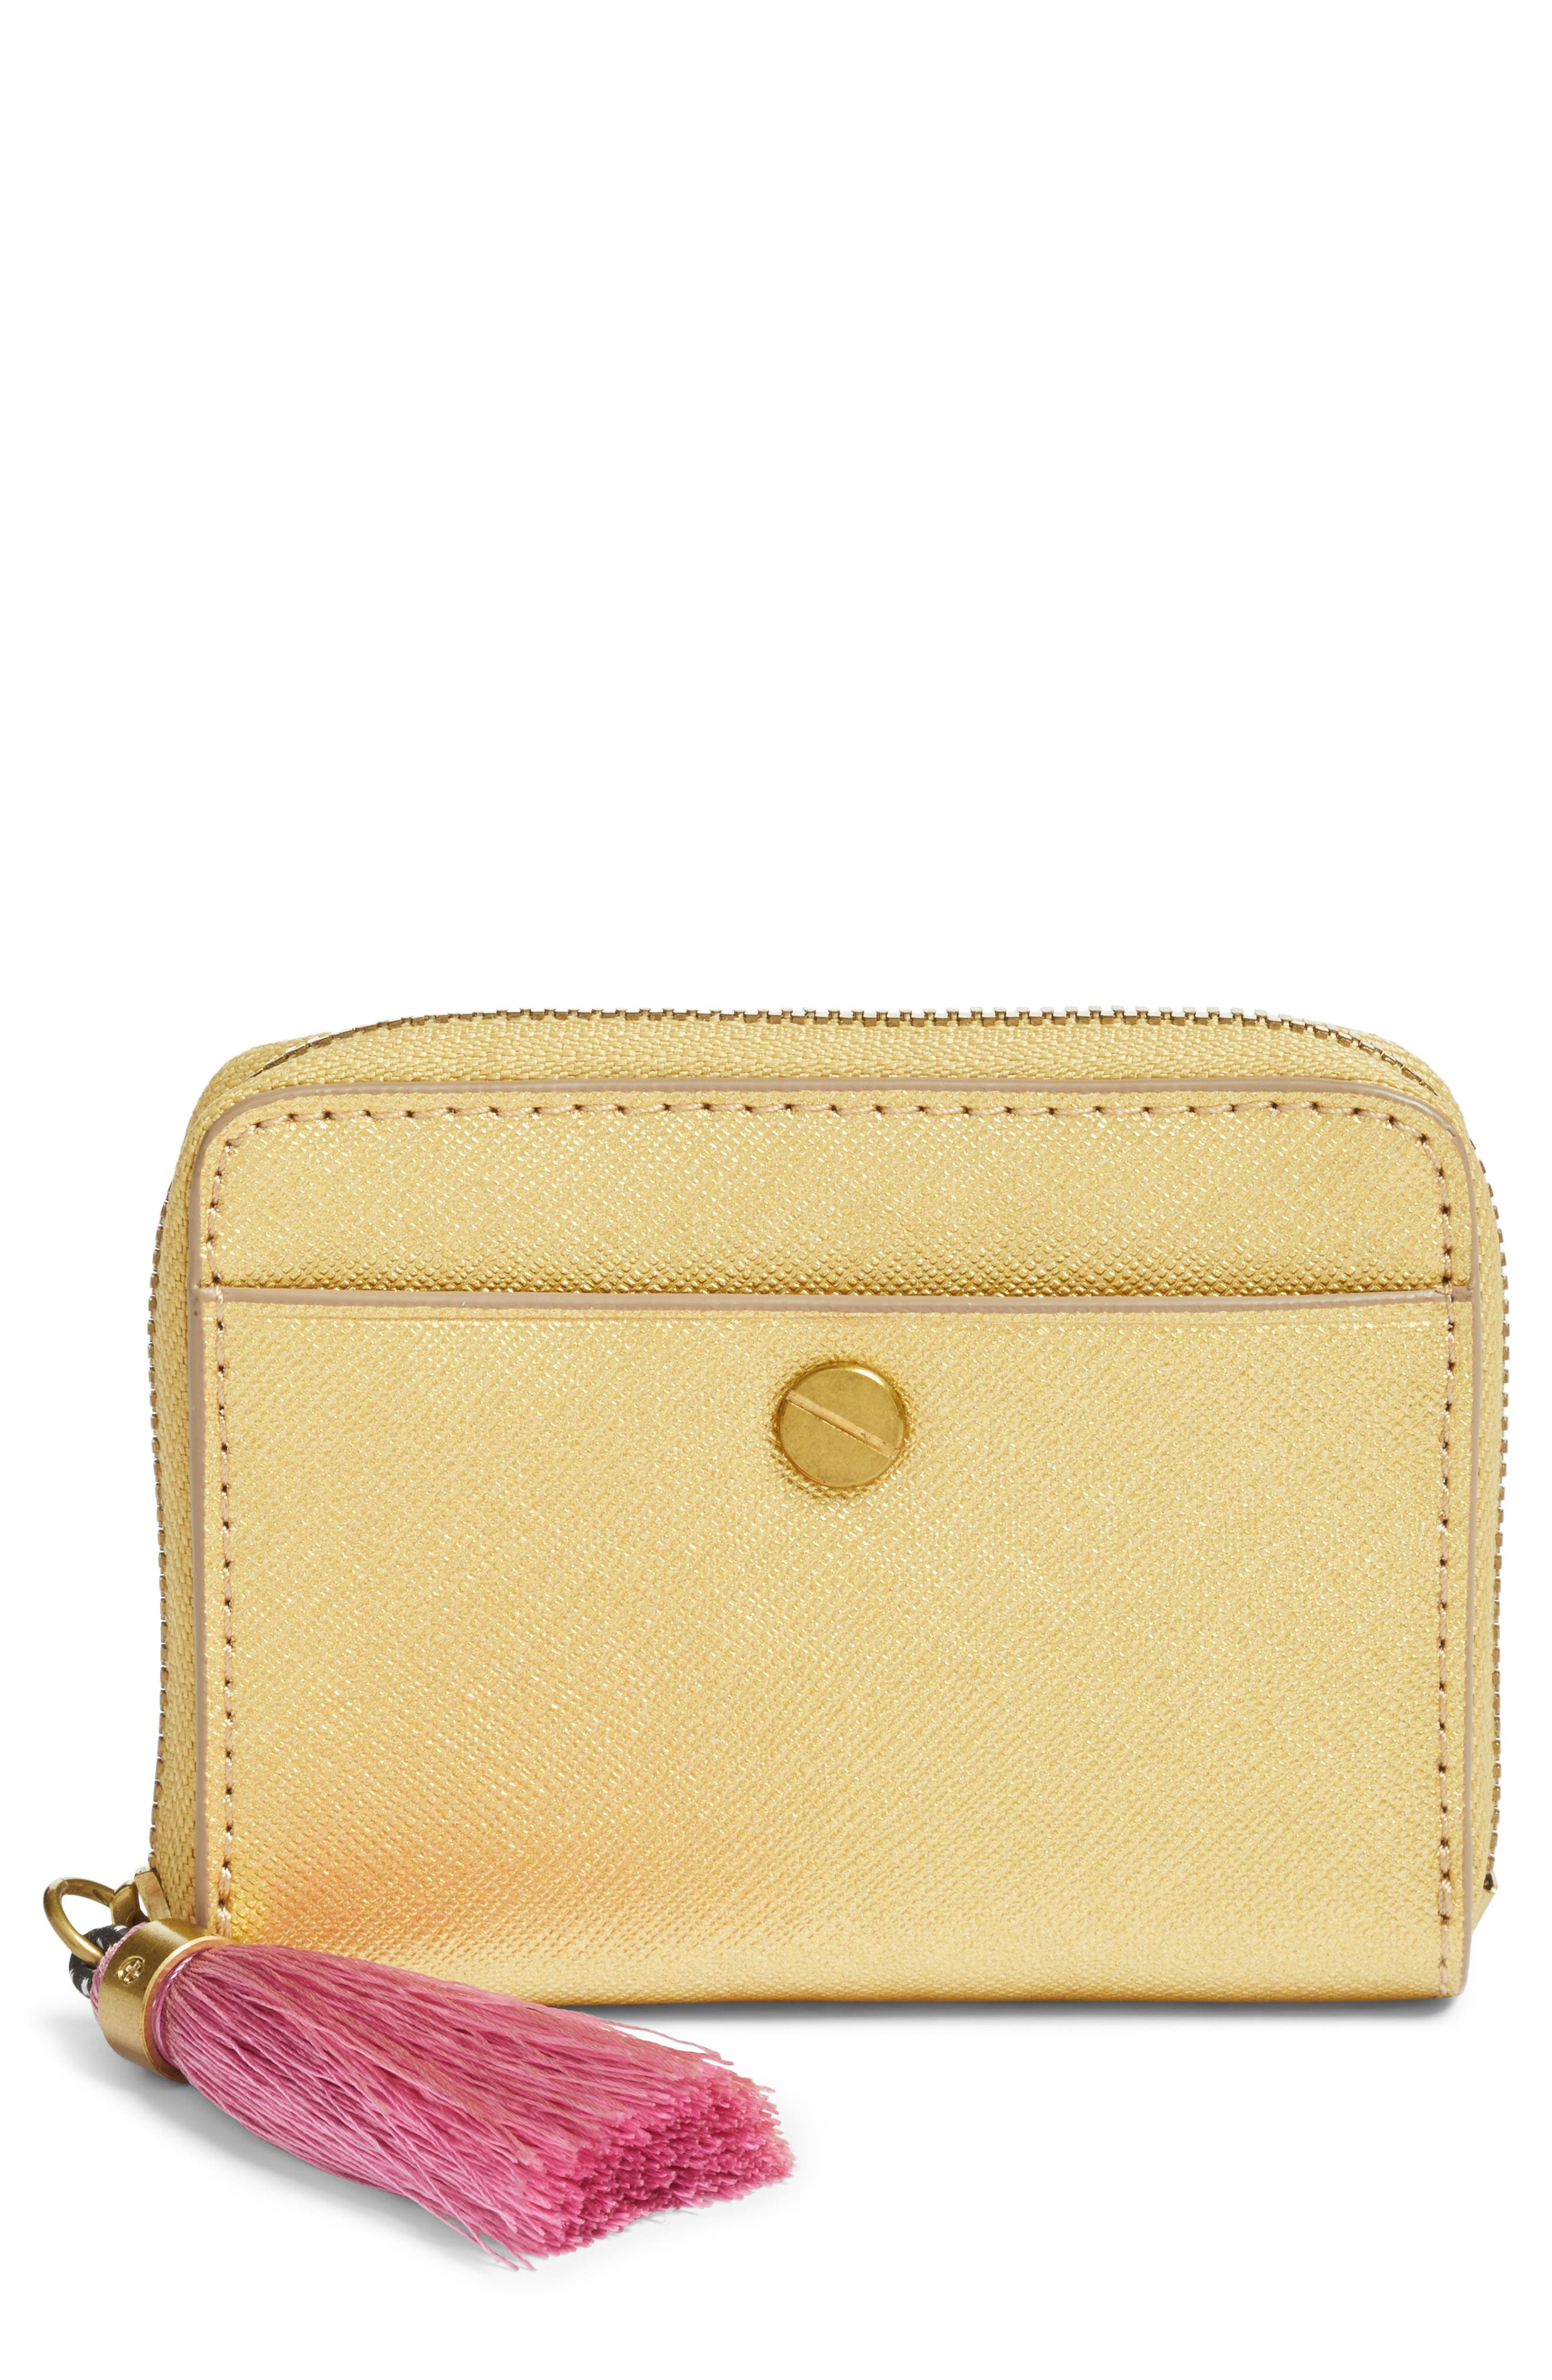 Saffiano Italian Leather Card Case with Tassel,                         Main,                         color, Gold